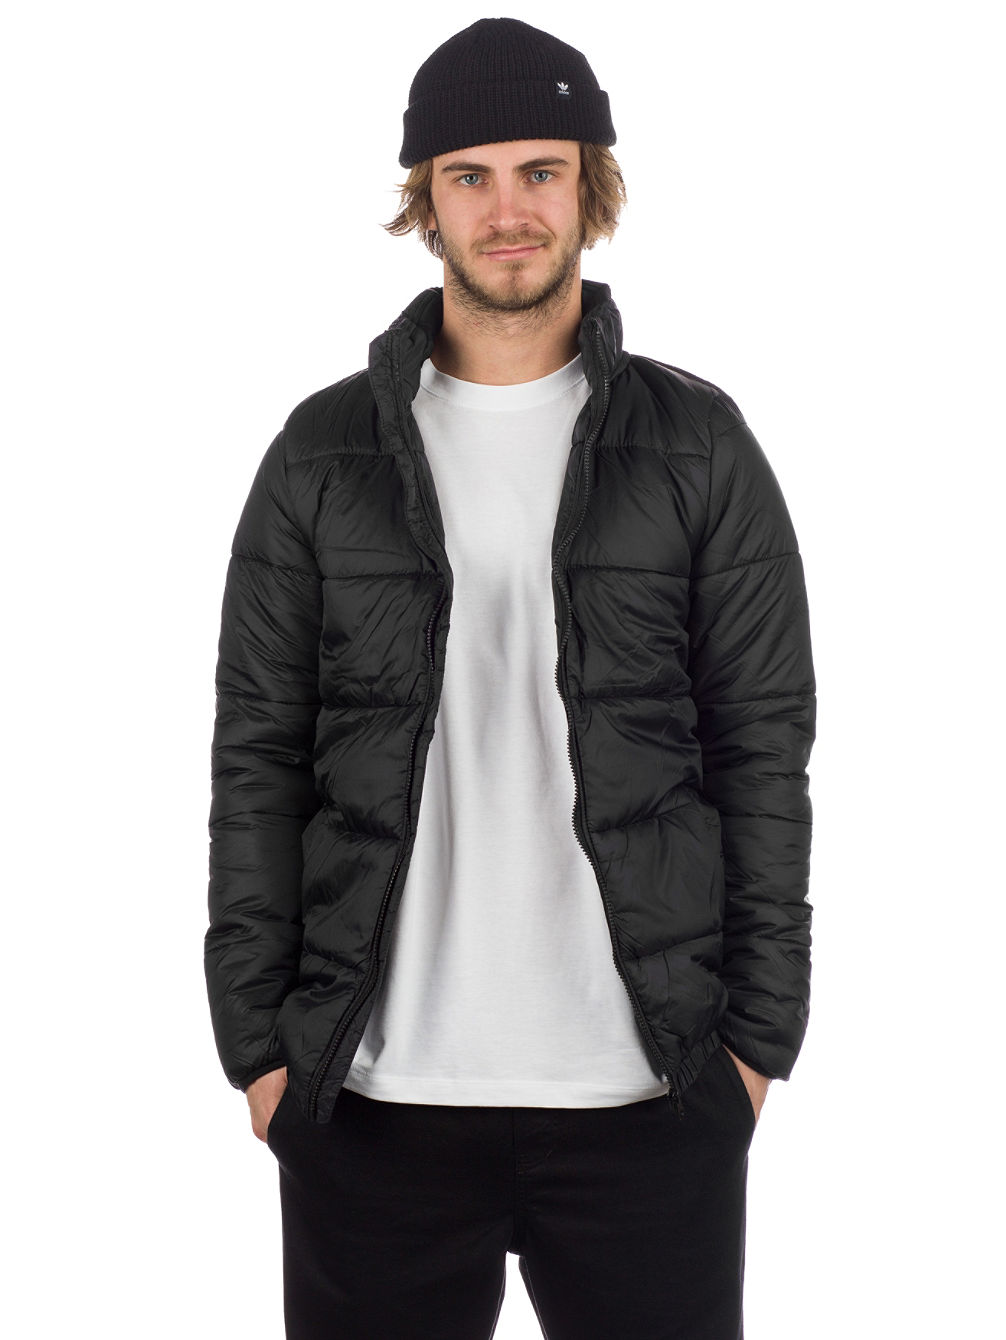 Expanded Puffy Jacket